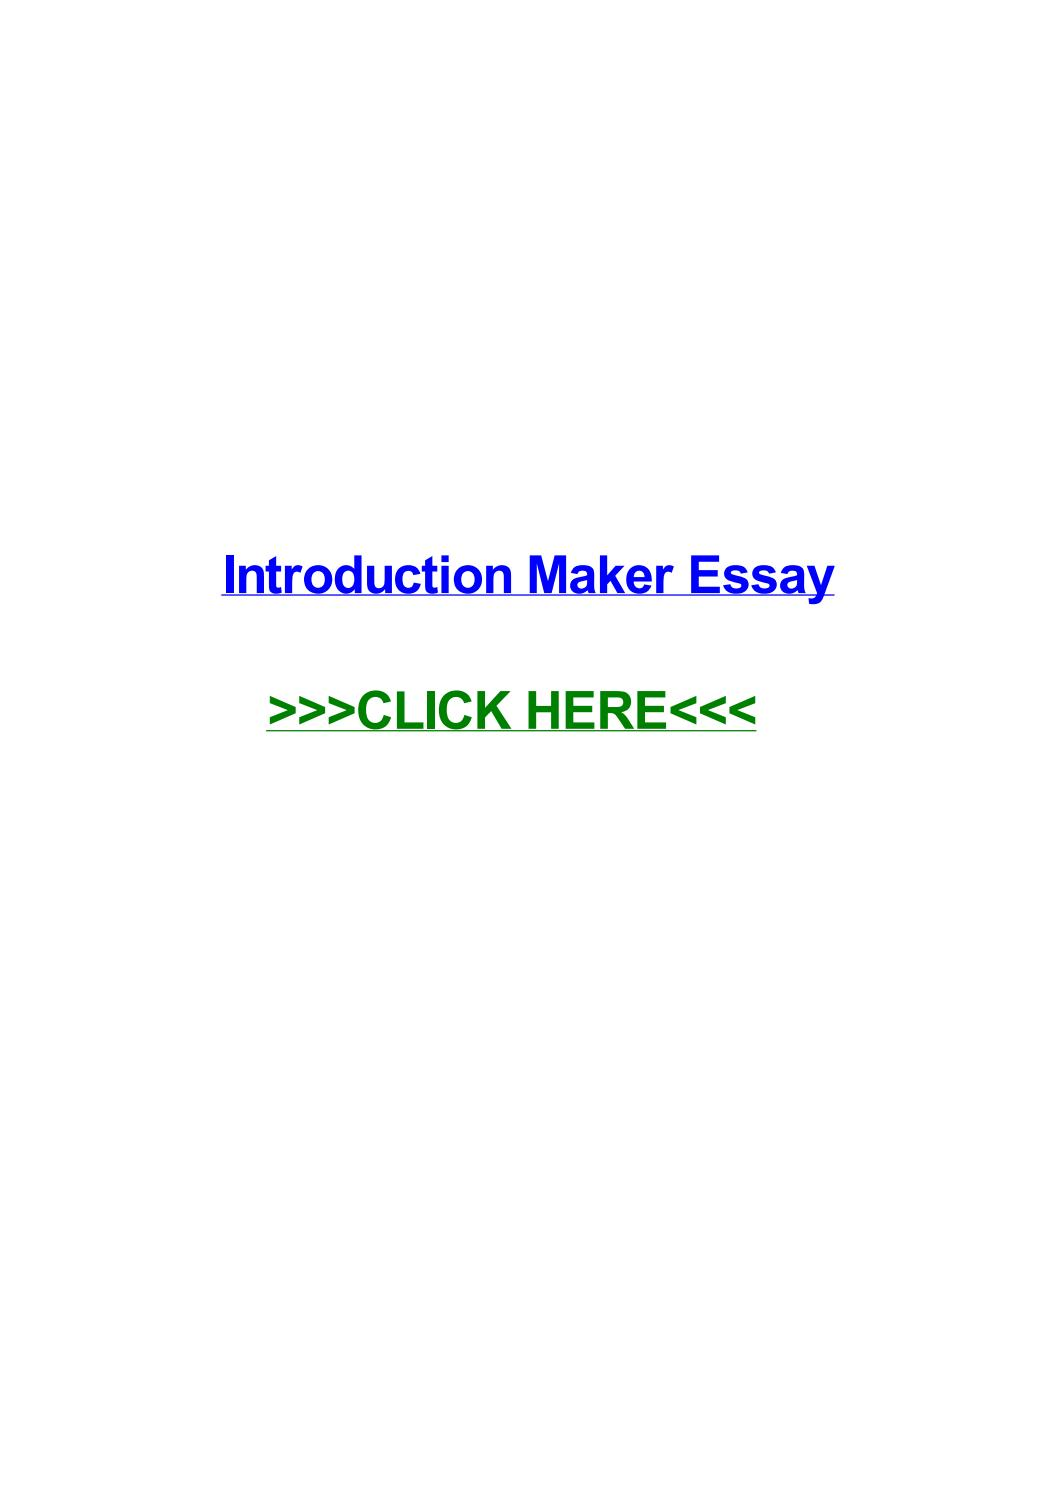 008 Conclusion Maker For Essays Page 1 Essay Staggering Full